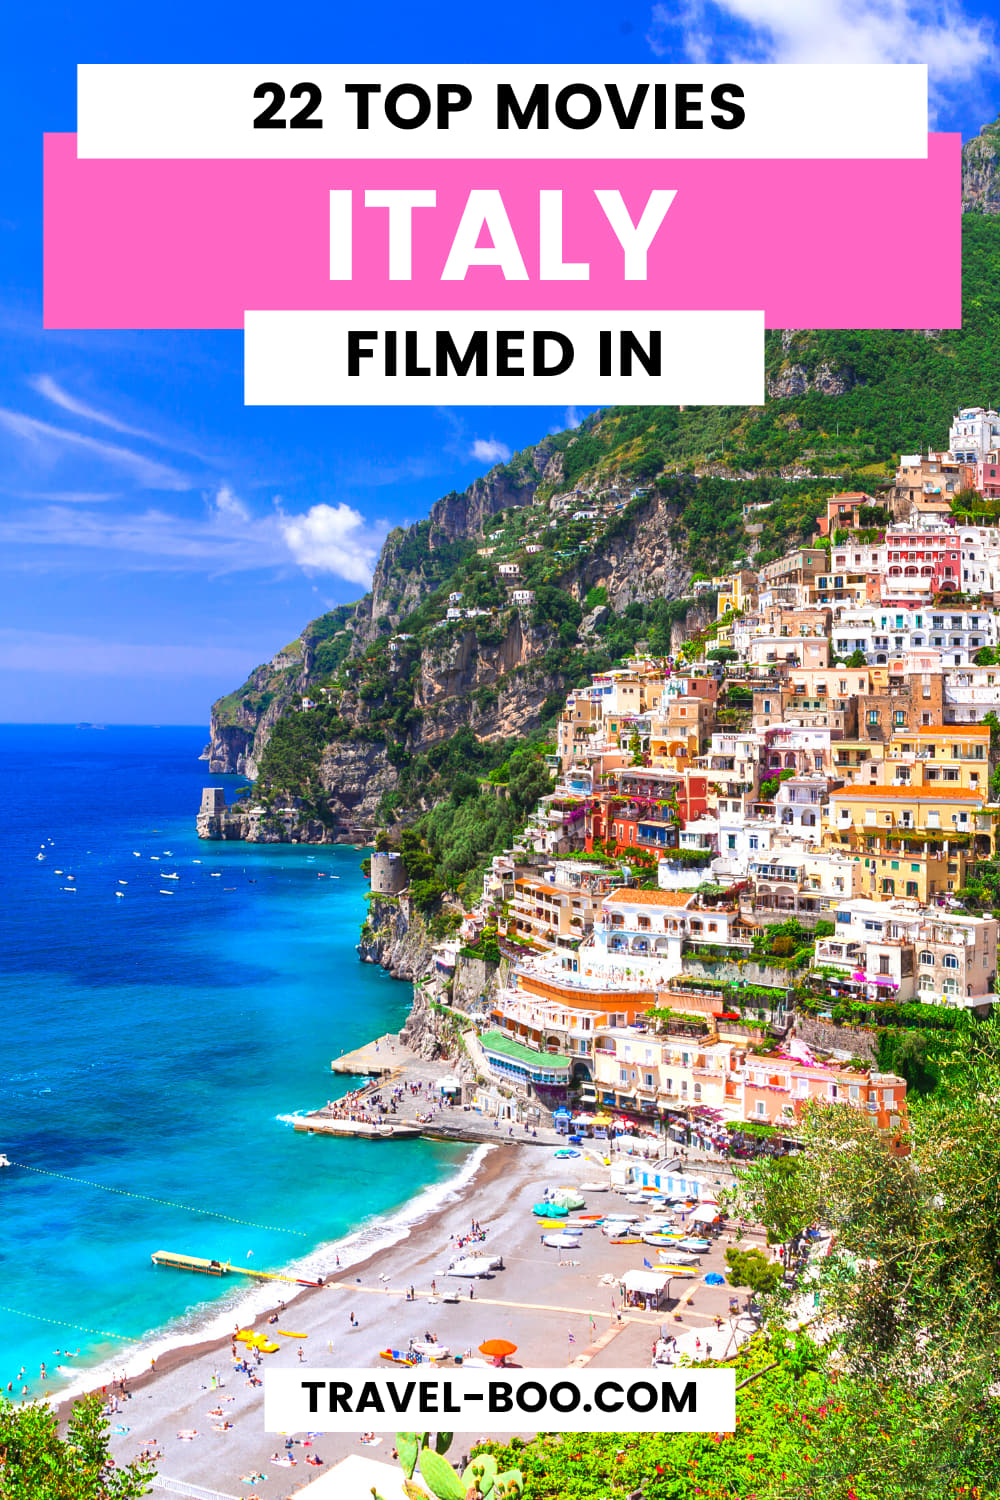 22 Best Italy Movies About or Set in Italy! Italy Movies, Italian Movies, Movies from Italy, Italy Travel, Italy, Italy Travel Tips!